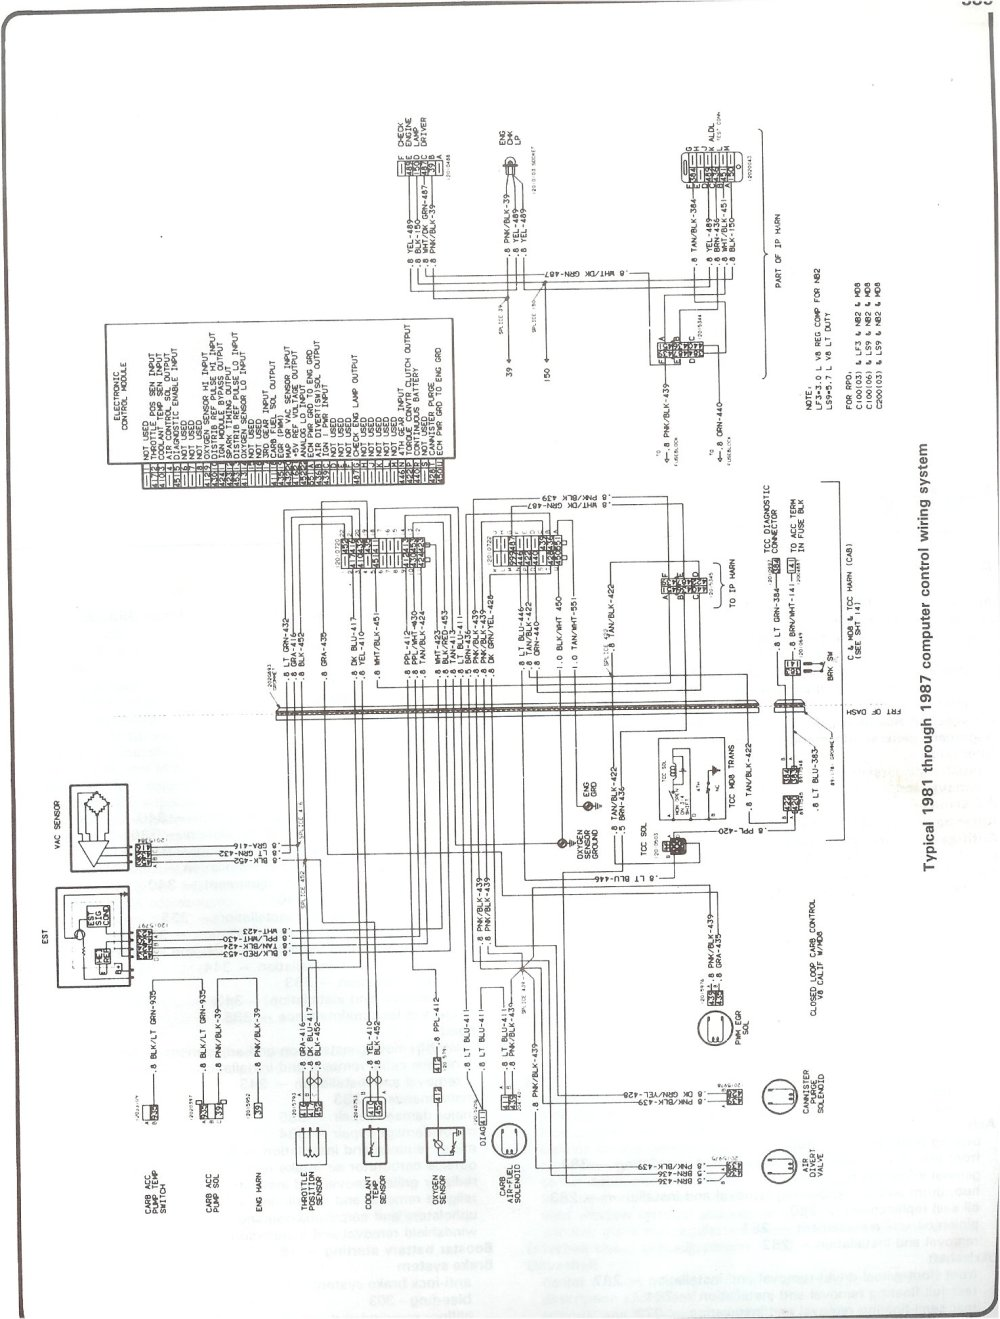 medium resolution of 1986 gmc radio wiring detailed schematics diagram rh jvpacks com 86 gmc pickup parts 92 gmc